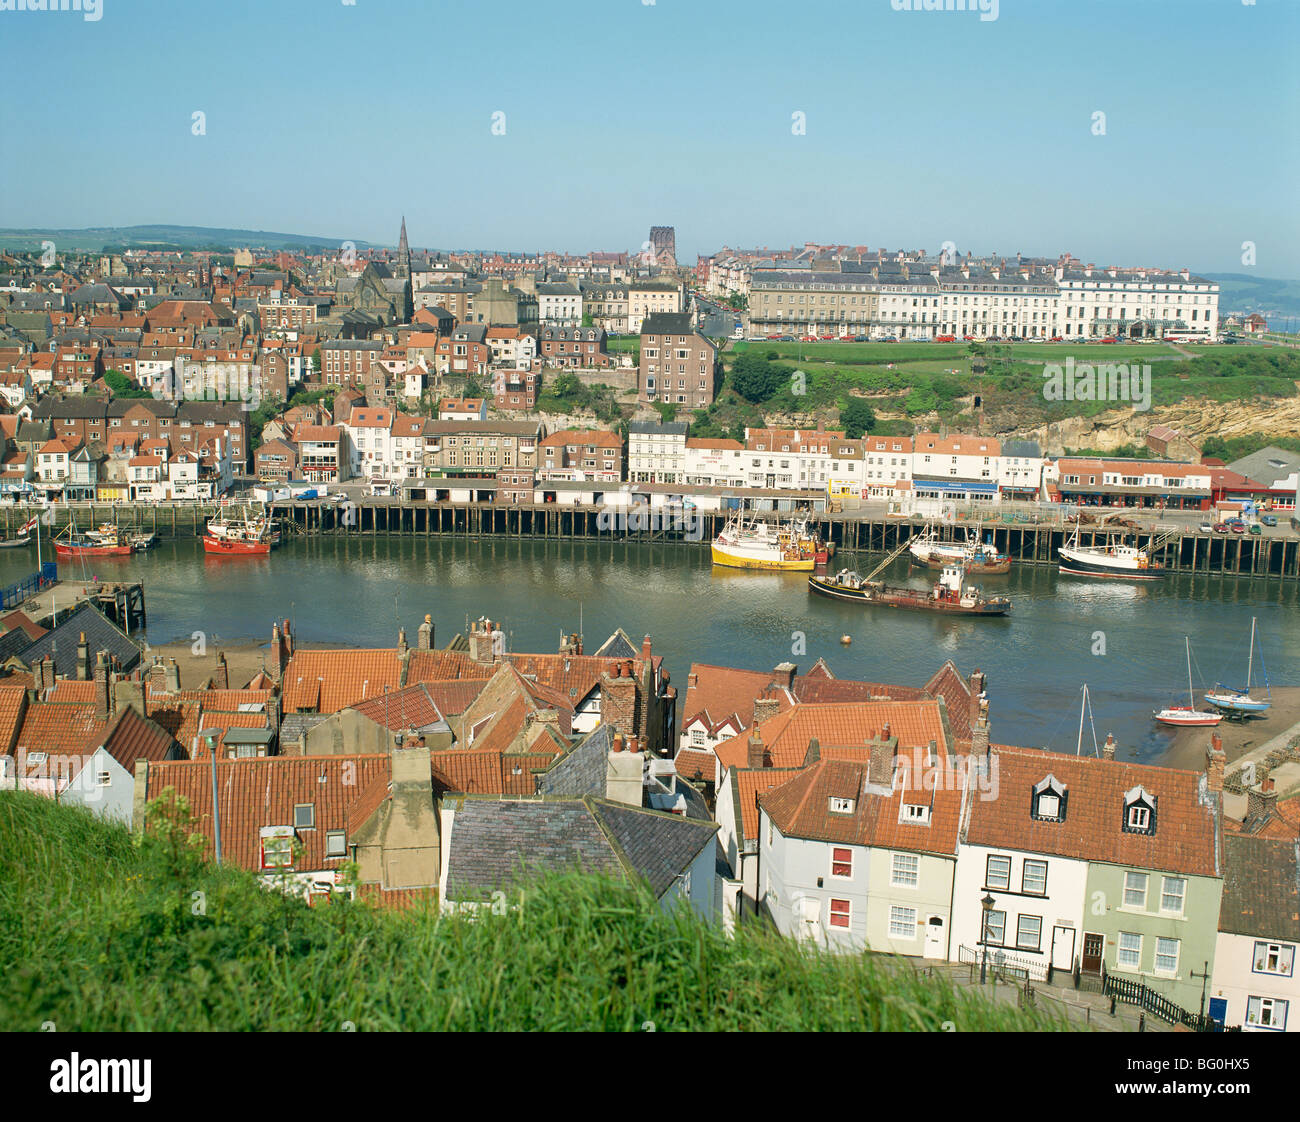 View over Whitby from St. Mary's Parish Church, North Yorkshire, Yorkshire, England, United Kingdom, Europe Stock Photo